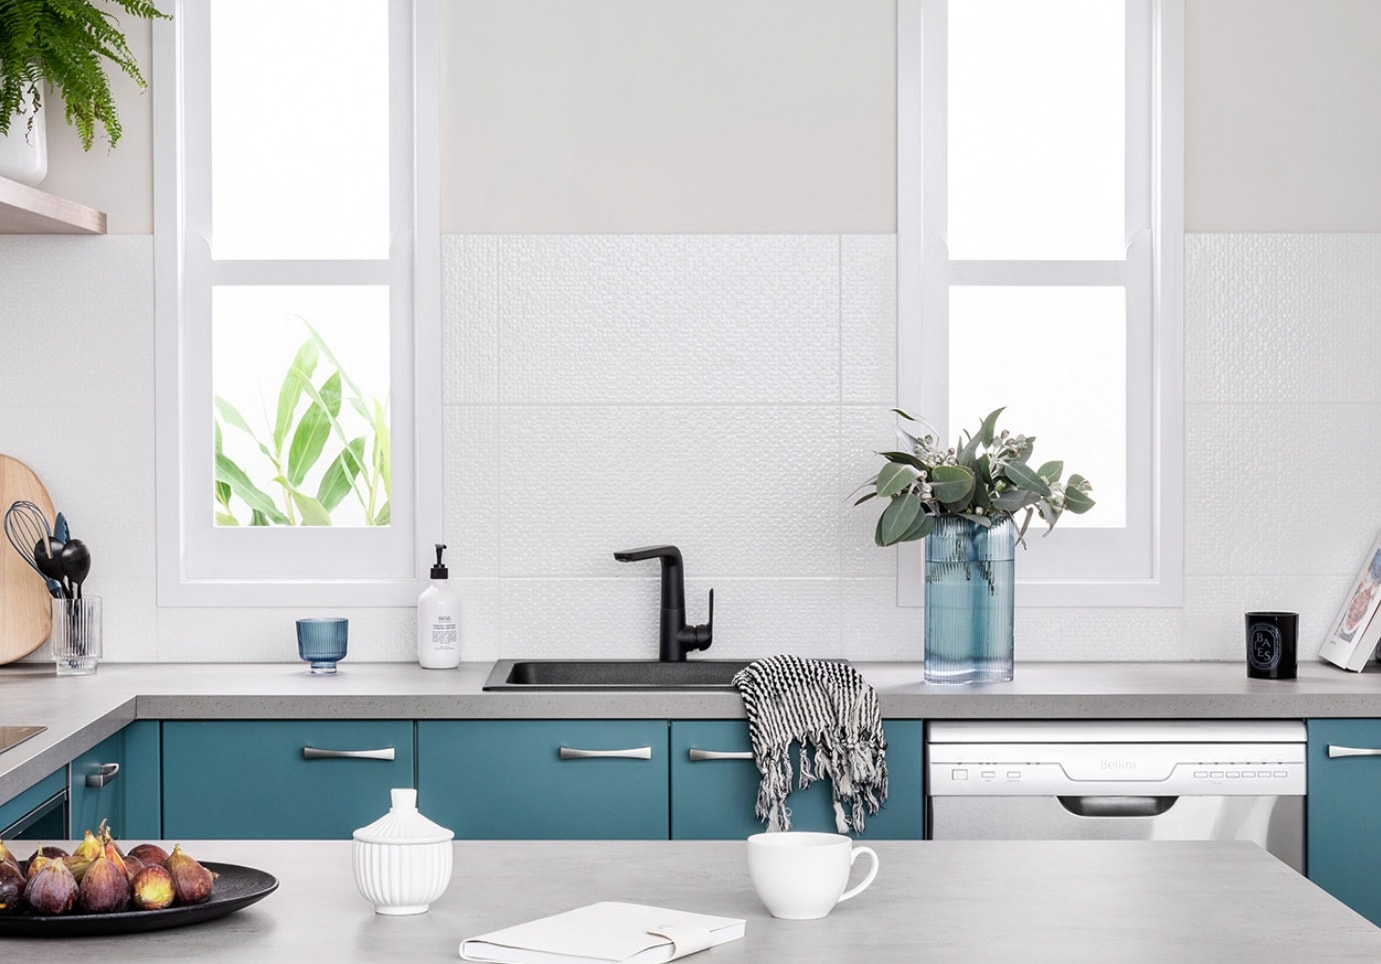 dark teal kitchen cabinets with black sink grey countertop and white walls